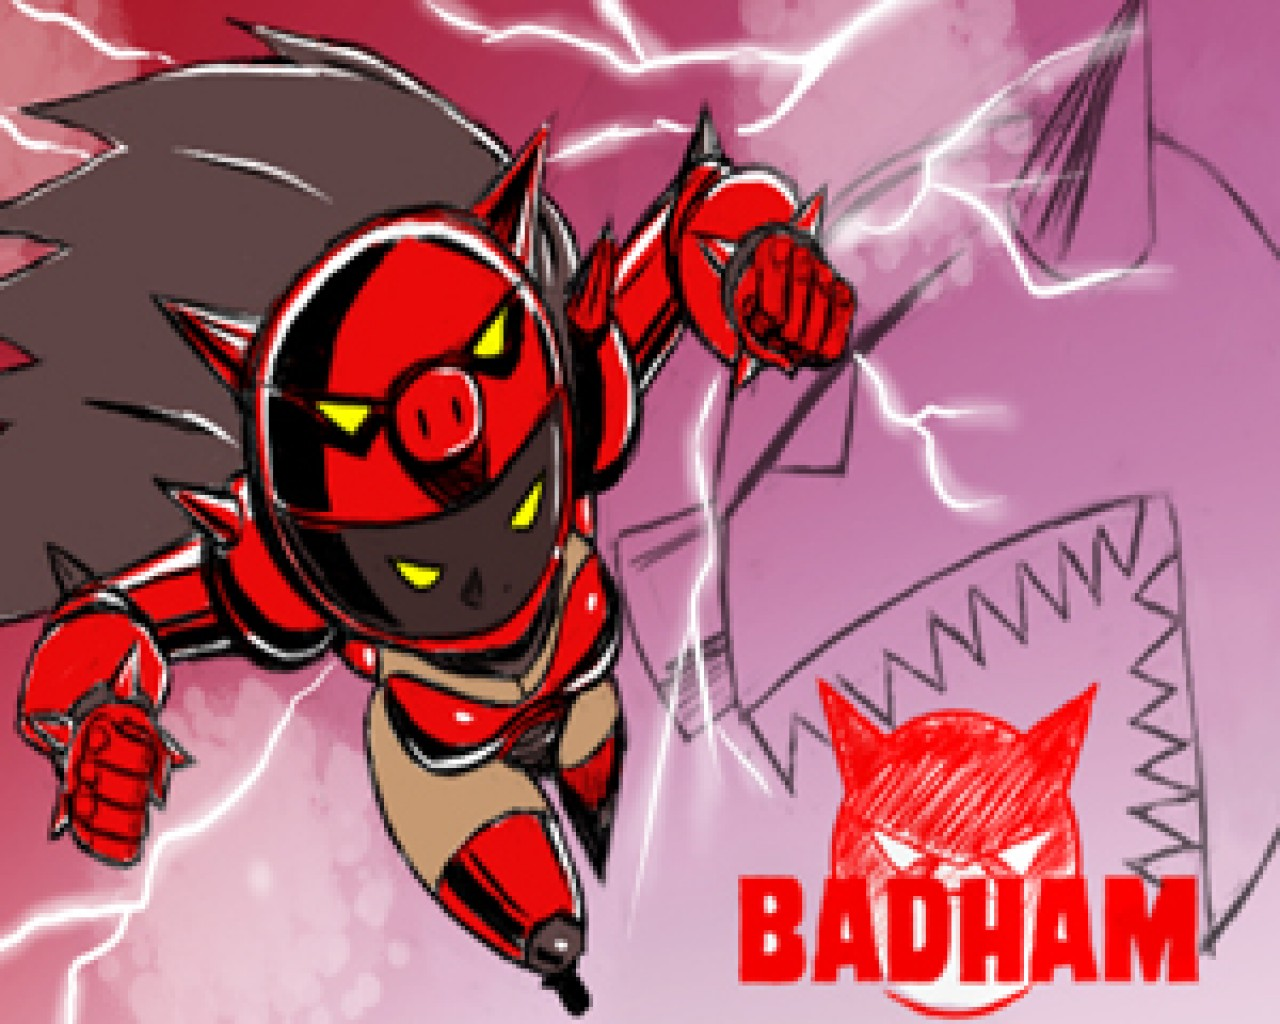 Poster Image for Badham